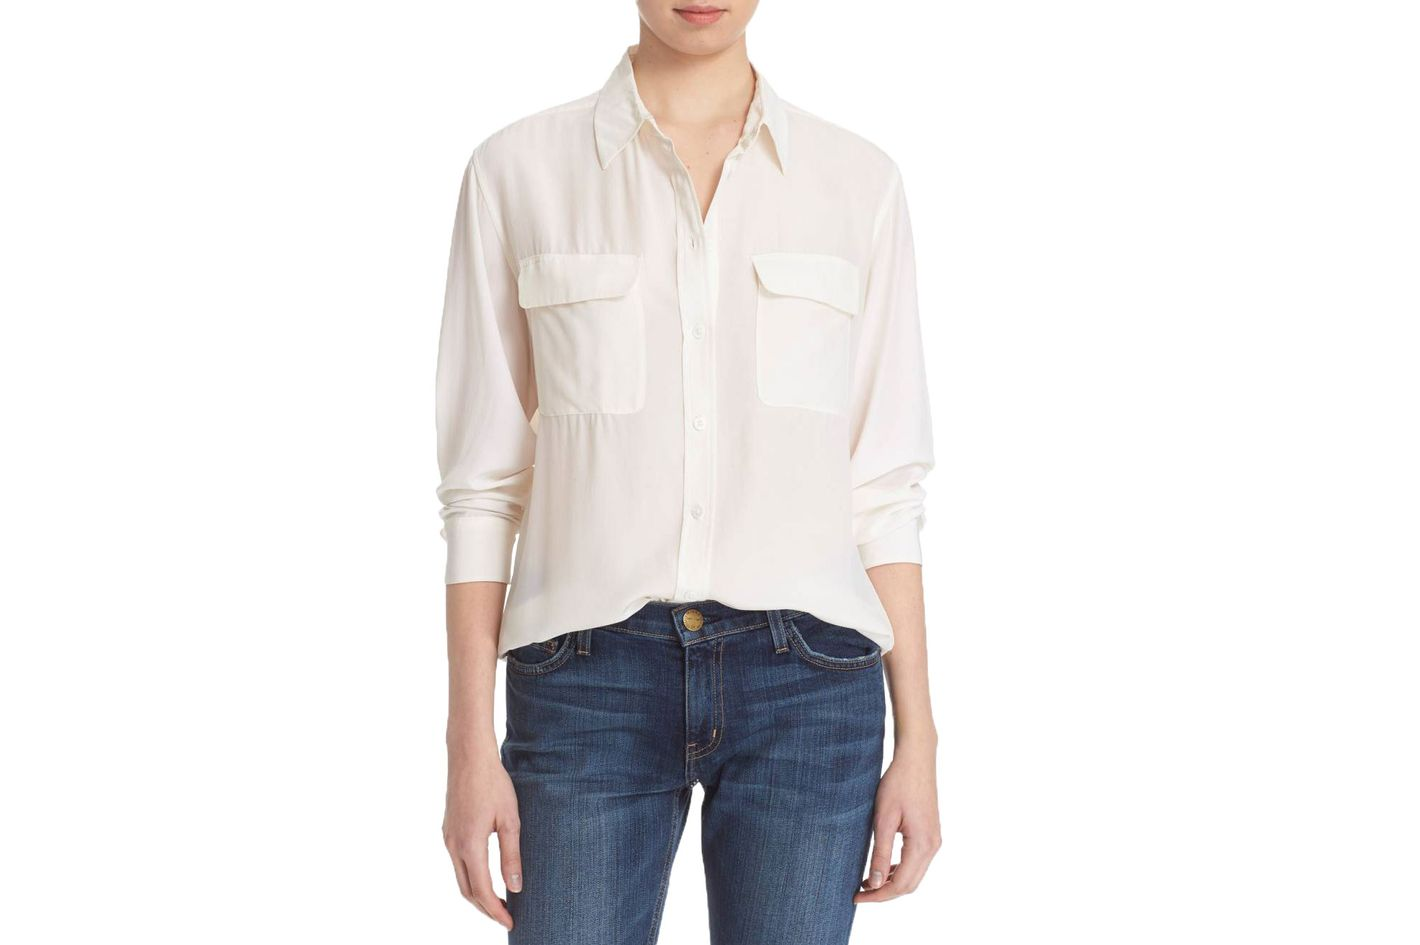 0d5f65fc Best White Button-down Shirts for Women